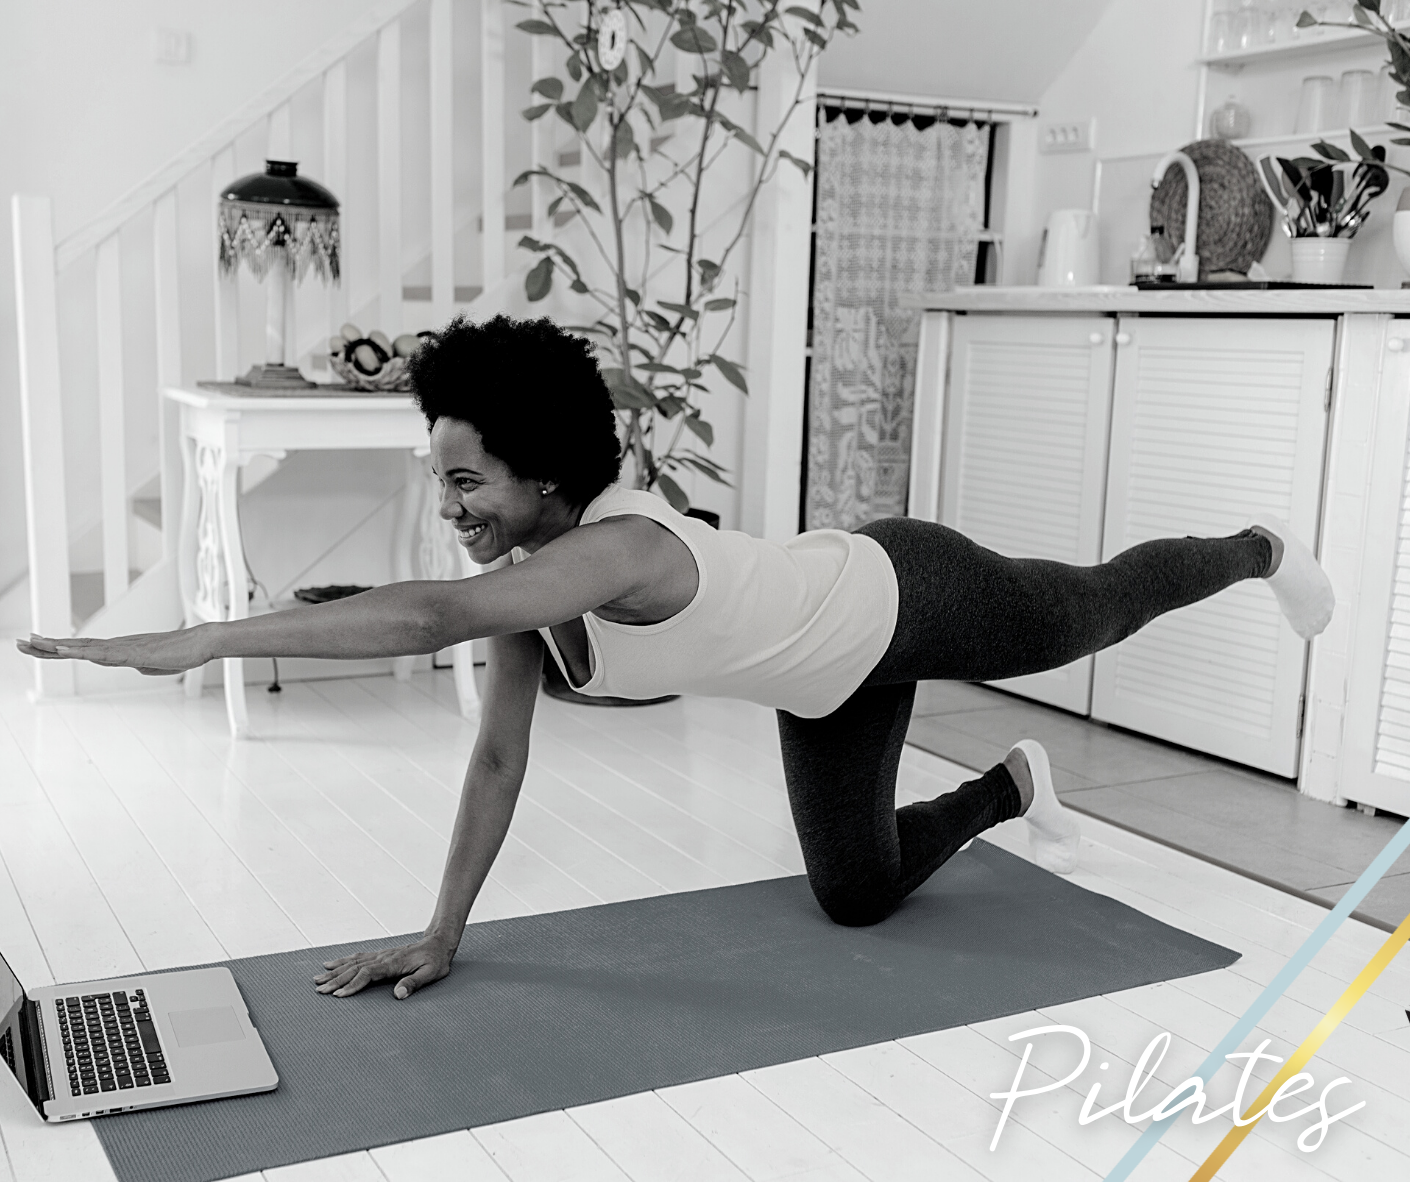 Pilates - Therapeutic Exercise